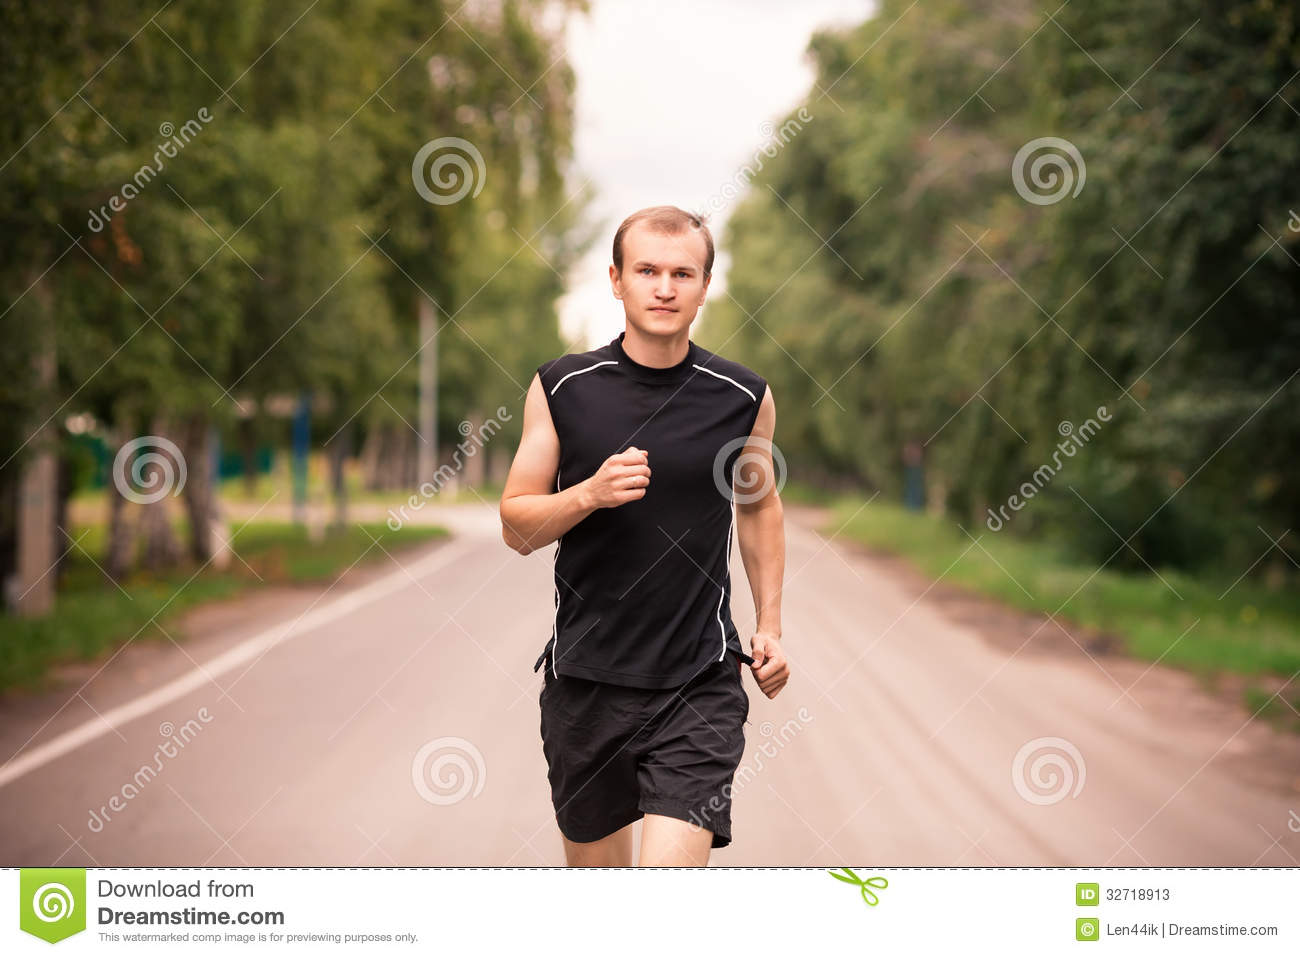 394cd08707a9 Sportive Young Man Jogging Outdoor Stock Image - Image of headphones ...